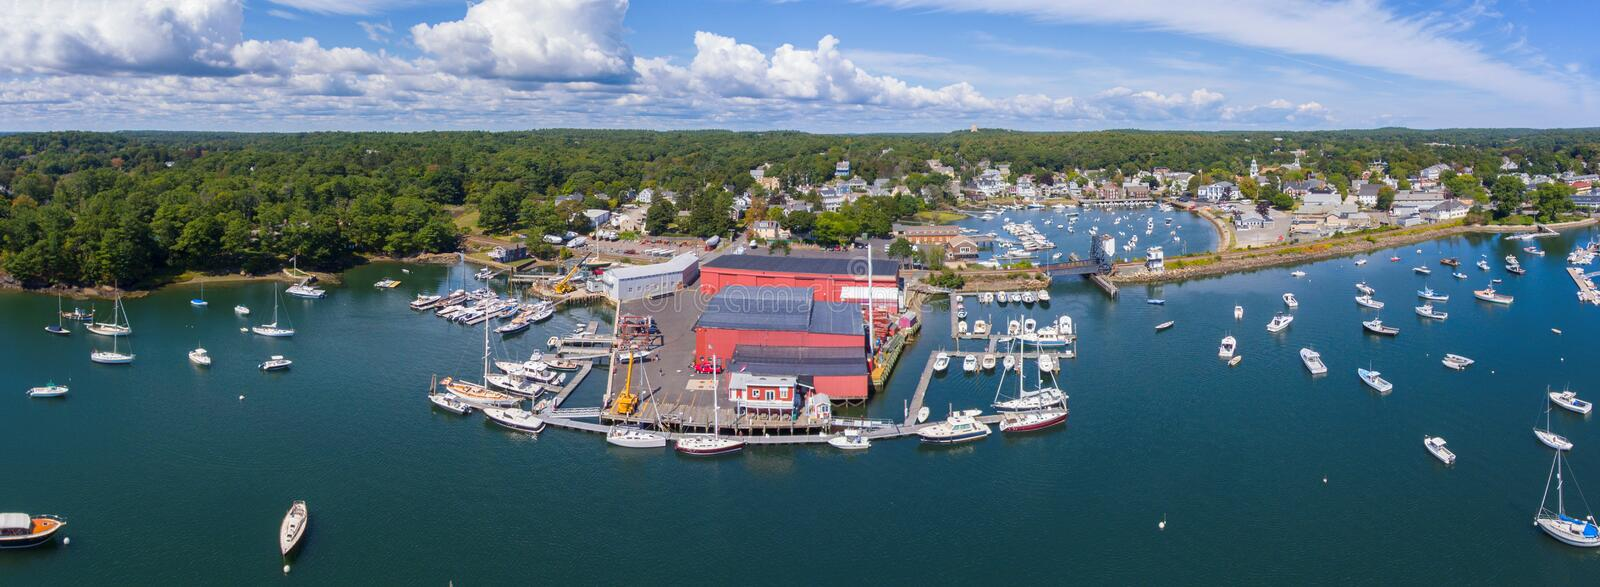 Manchester-by-the-sea, Cape Ann, Massachusetts, USA. Manchester Marine and harbor aerial view panorama, Manchester by the sea, Cape Ann, Massachusetts, USA royalty free stock images